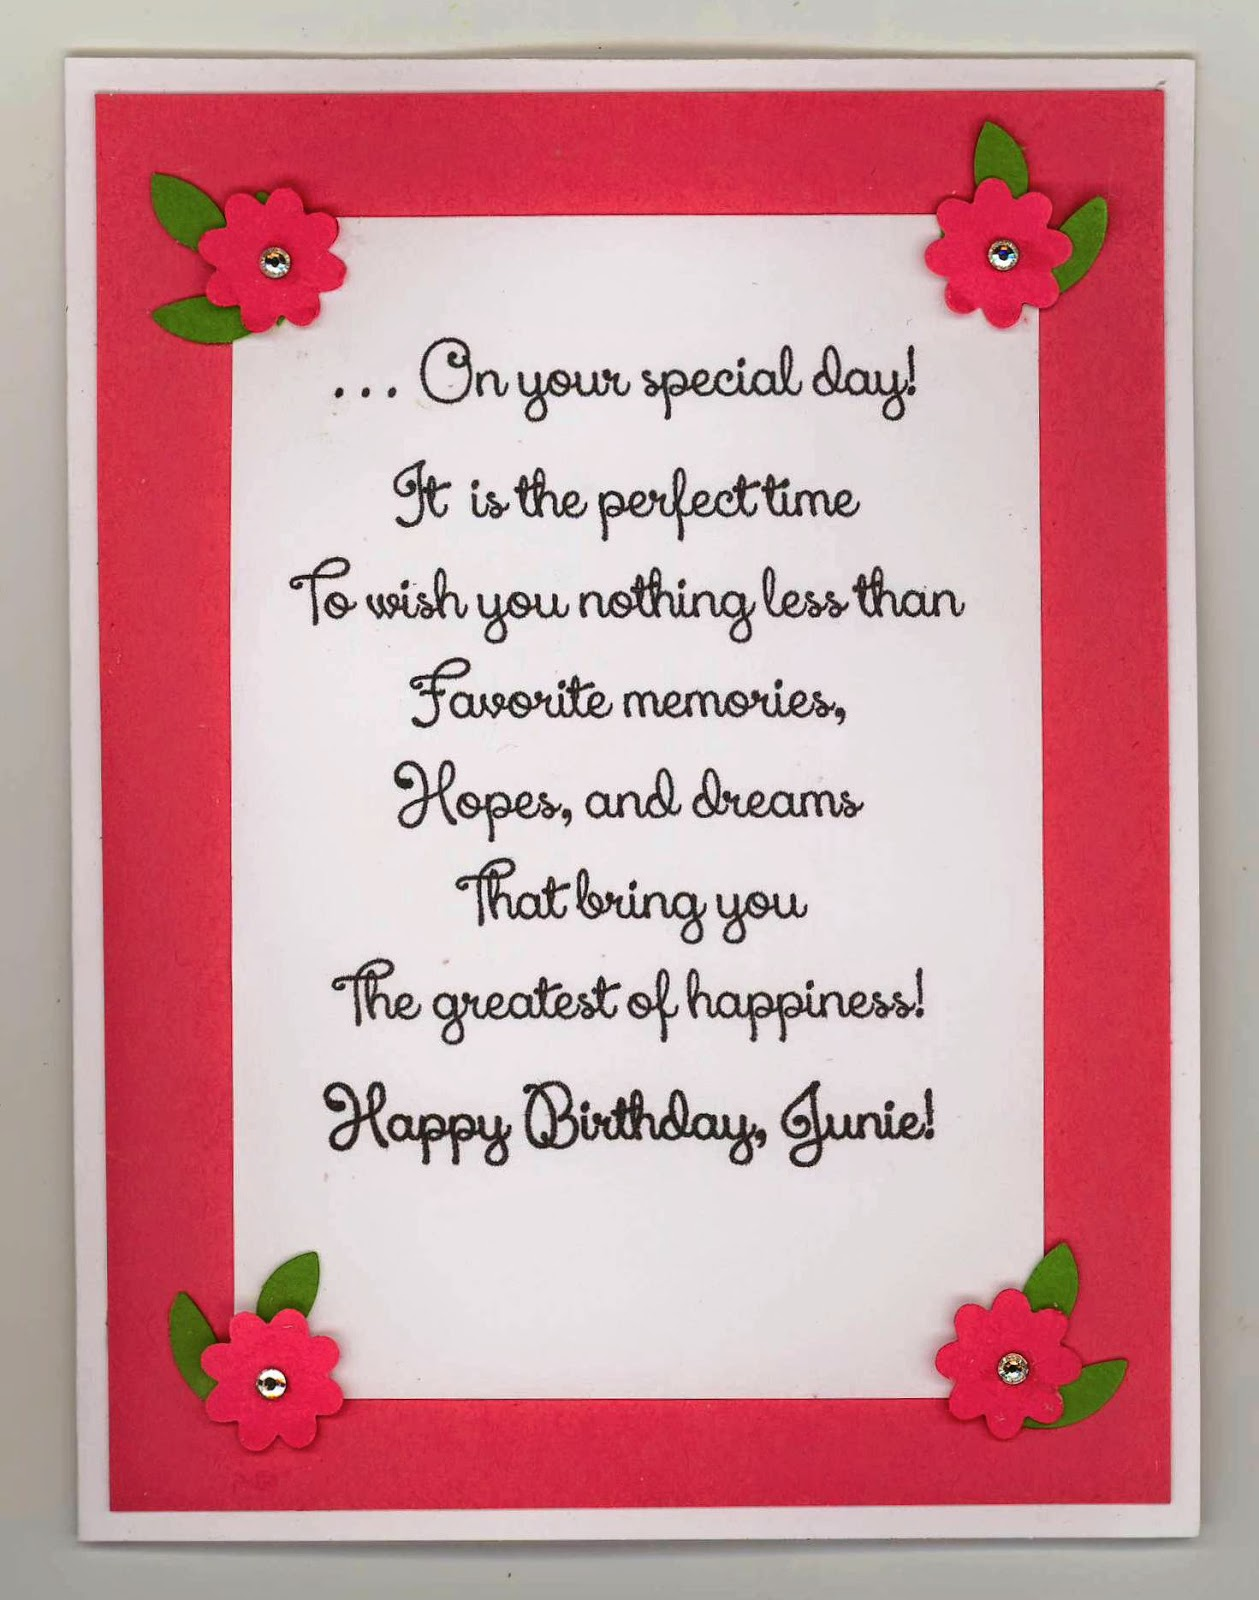 chatterbox creations birthday card for cousin junie recipe stampin up cardstocks whisper white melon mambo gumball green su stamps flower shop su ink primrose petals su modern mosac ef